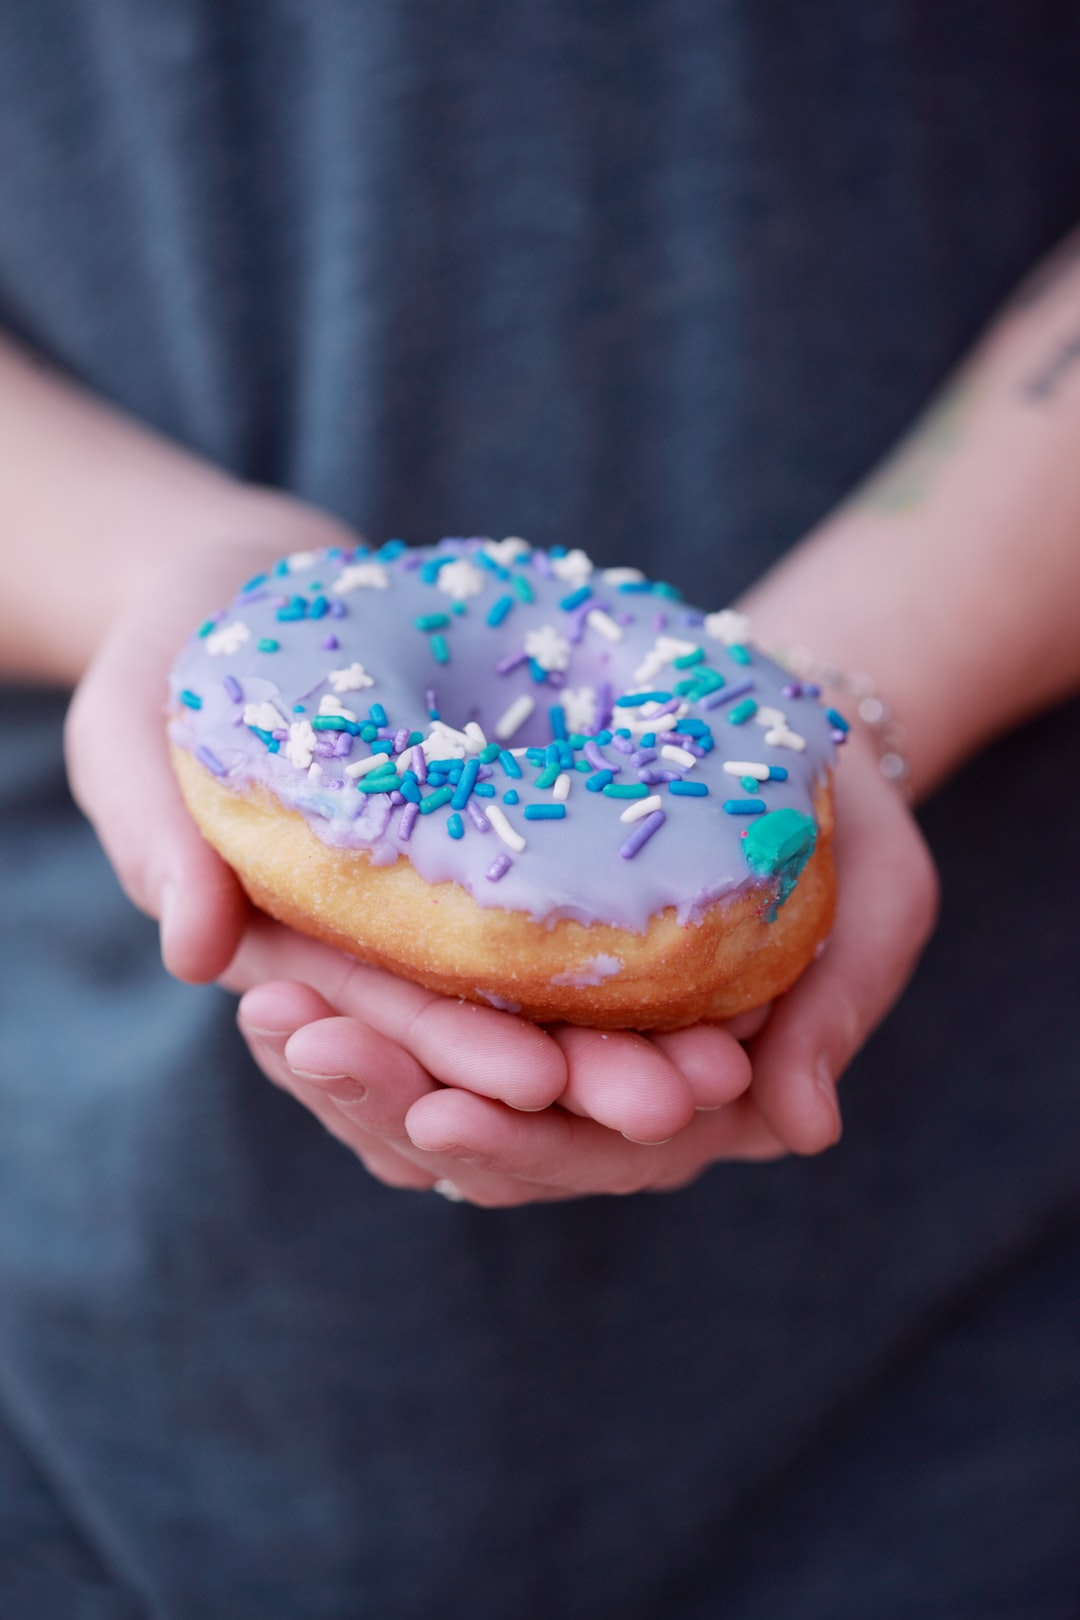 I picked up a dozen colorful donuts at the grocery store today. They were all decorated in bright springtime pastel colors and fun sprinkles.